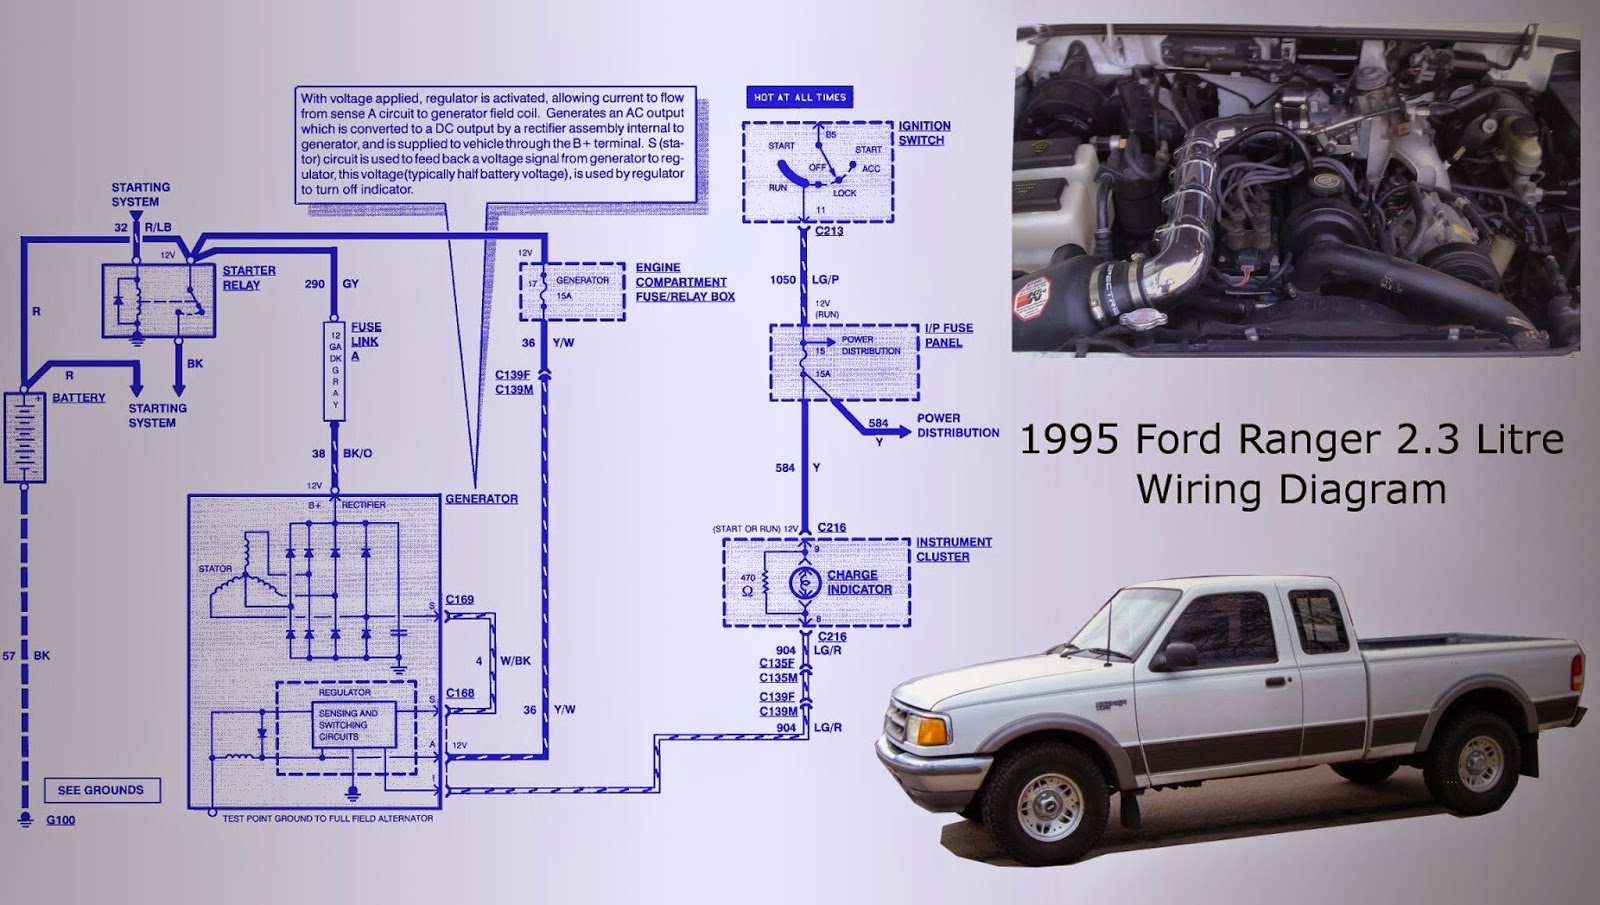 1995 ford ranger 2 3 litre wiring diagram auto wiring. Black Bedroom Furniture Sets. Home Design Ideas